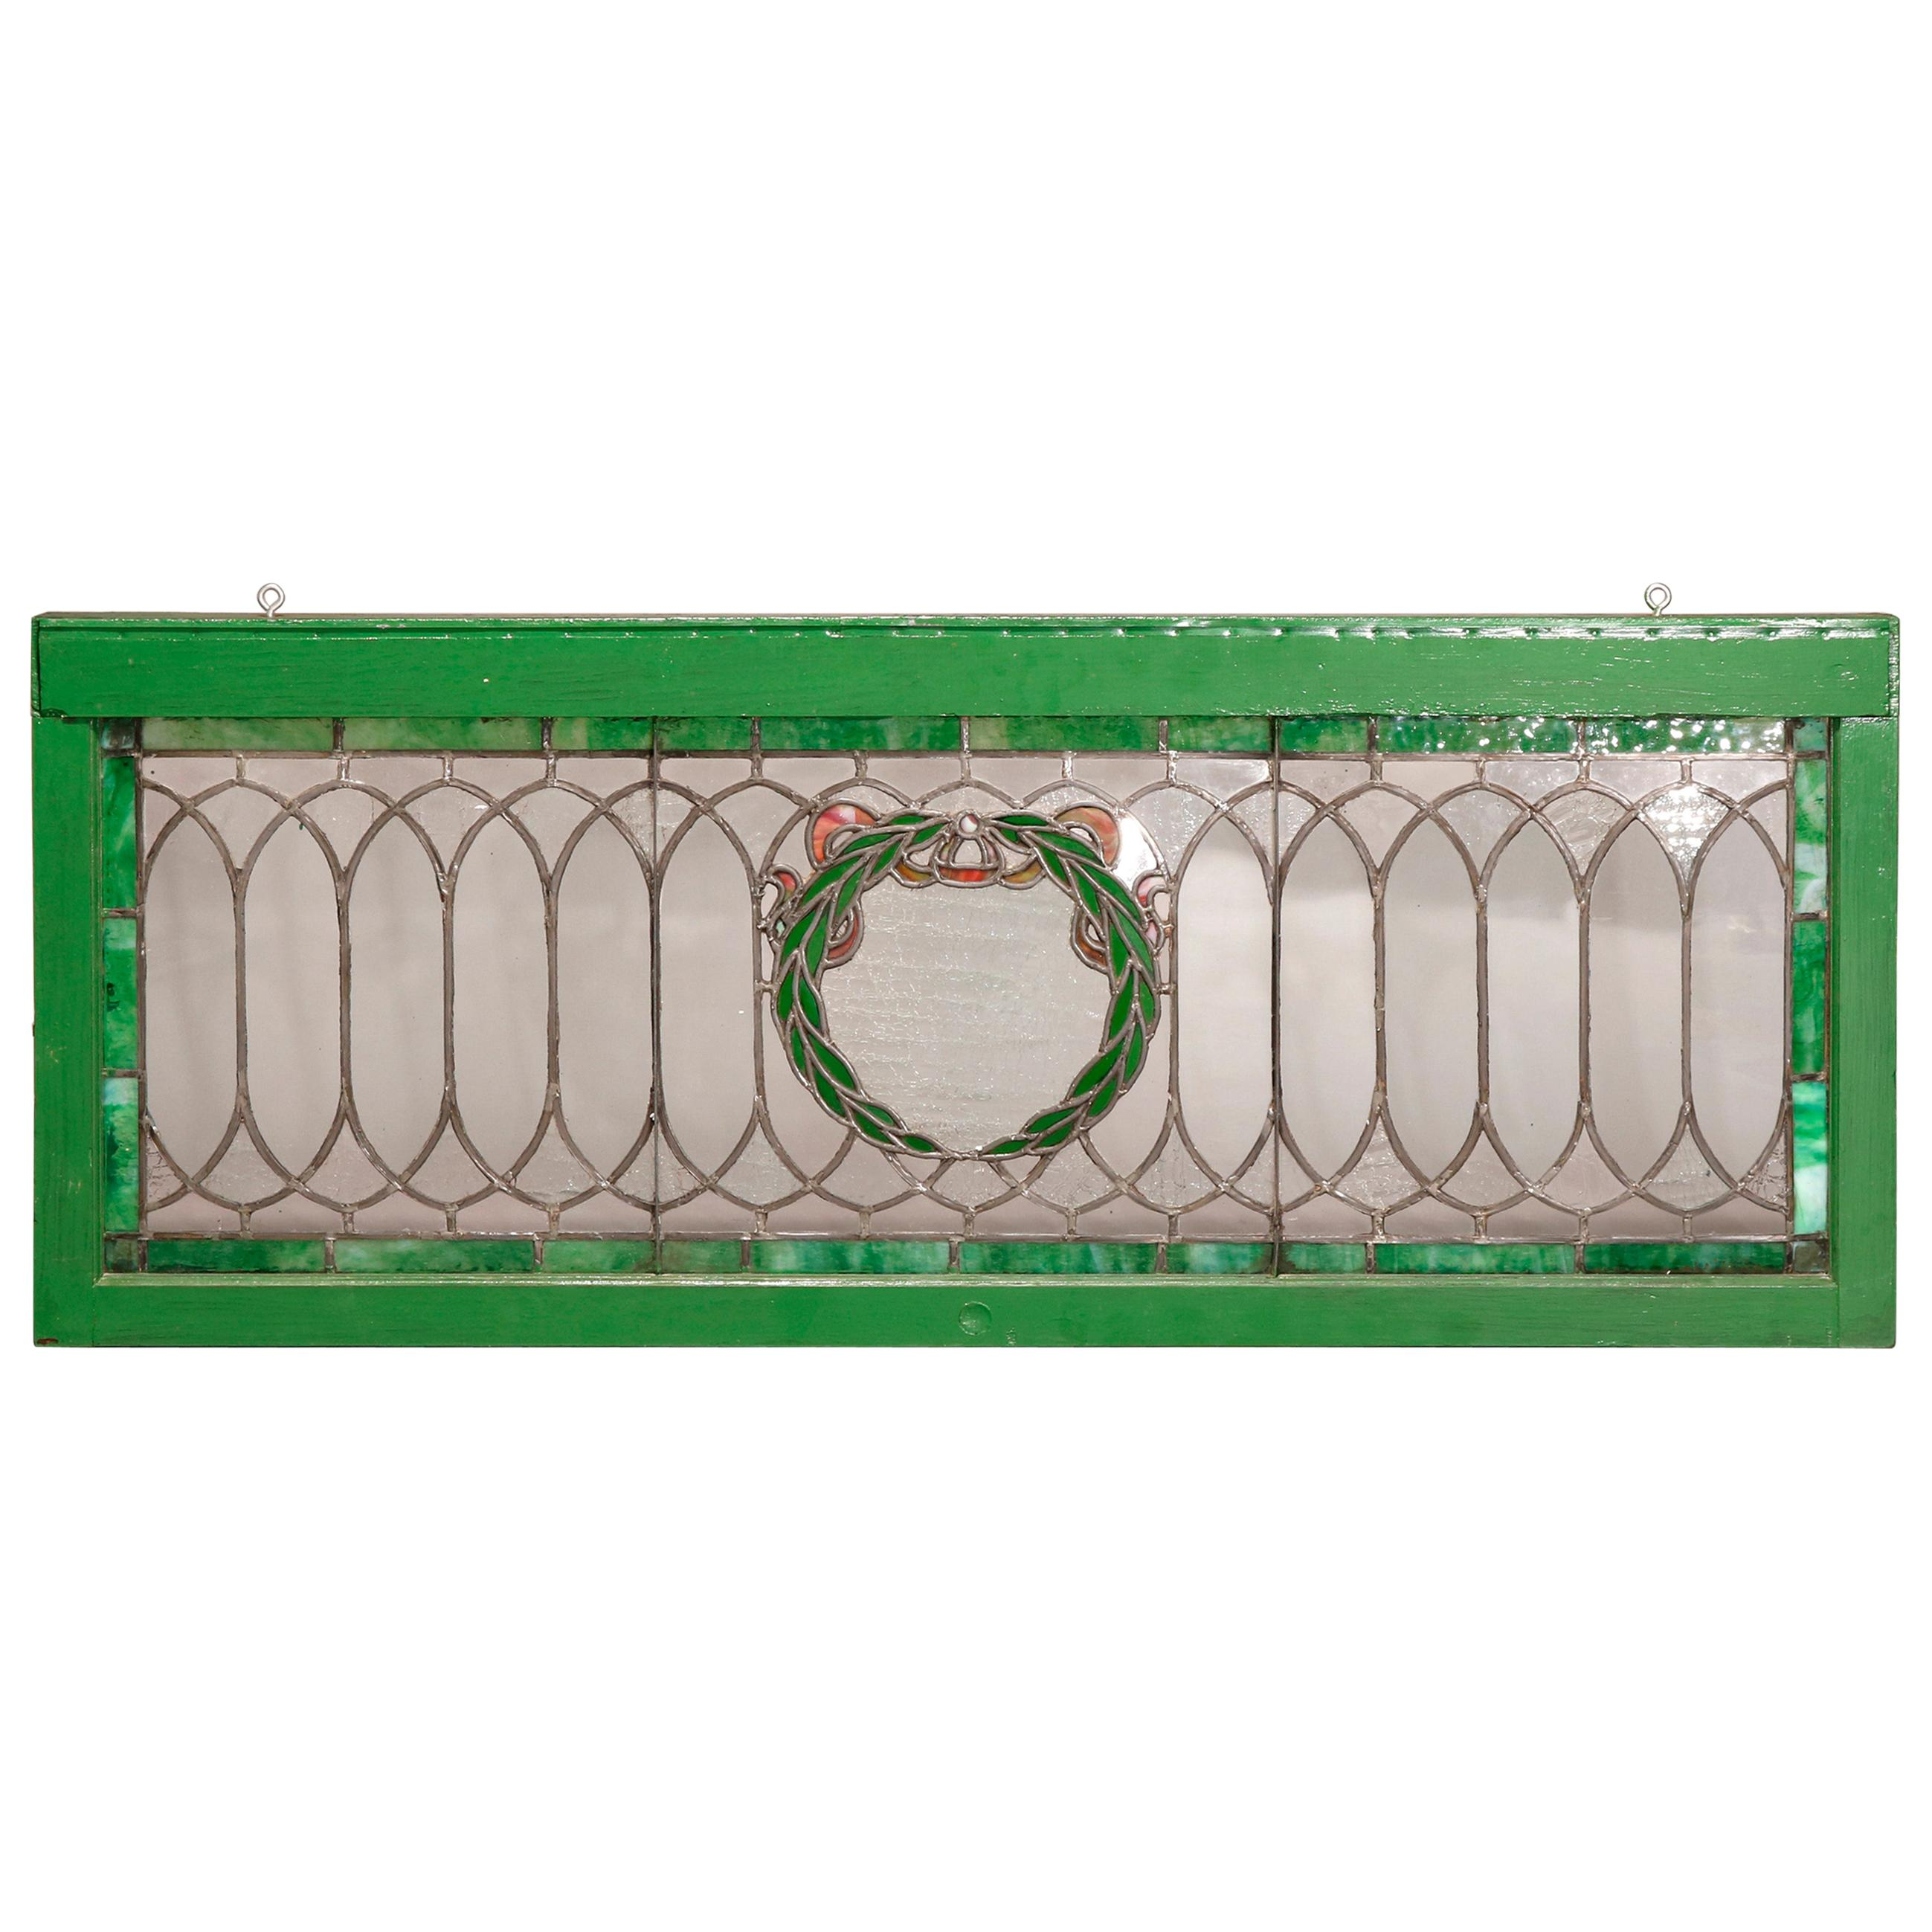 Antique Arts & Crafts Style Leaded & Stained Glass Laurel Wreath Window, c1910